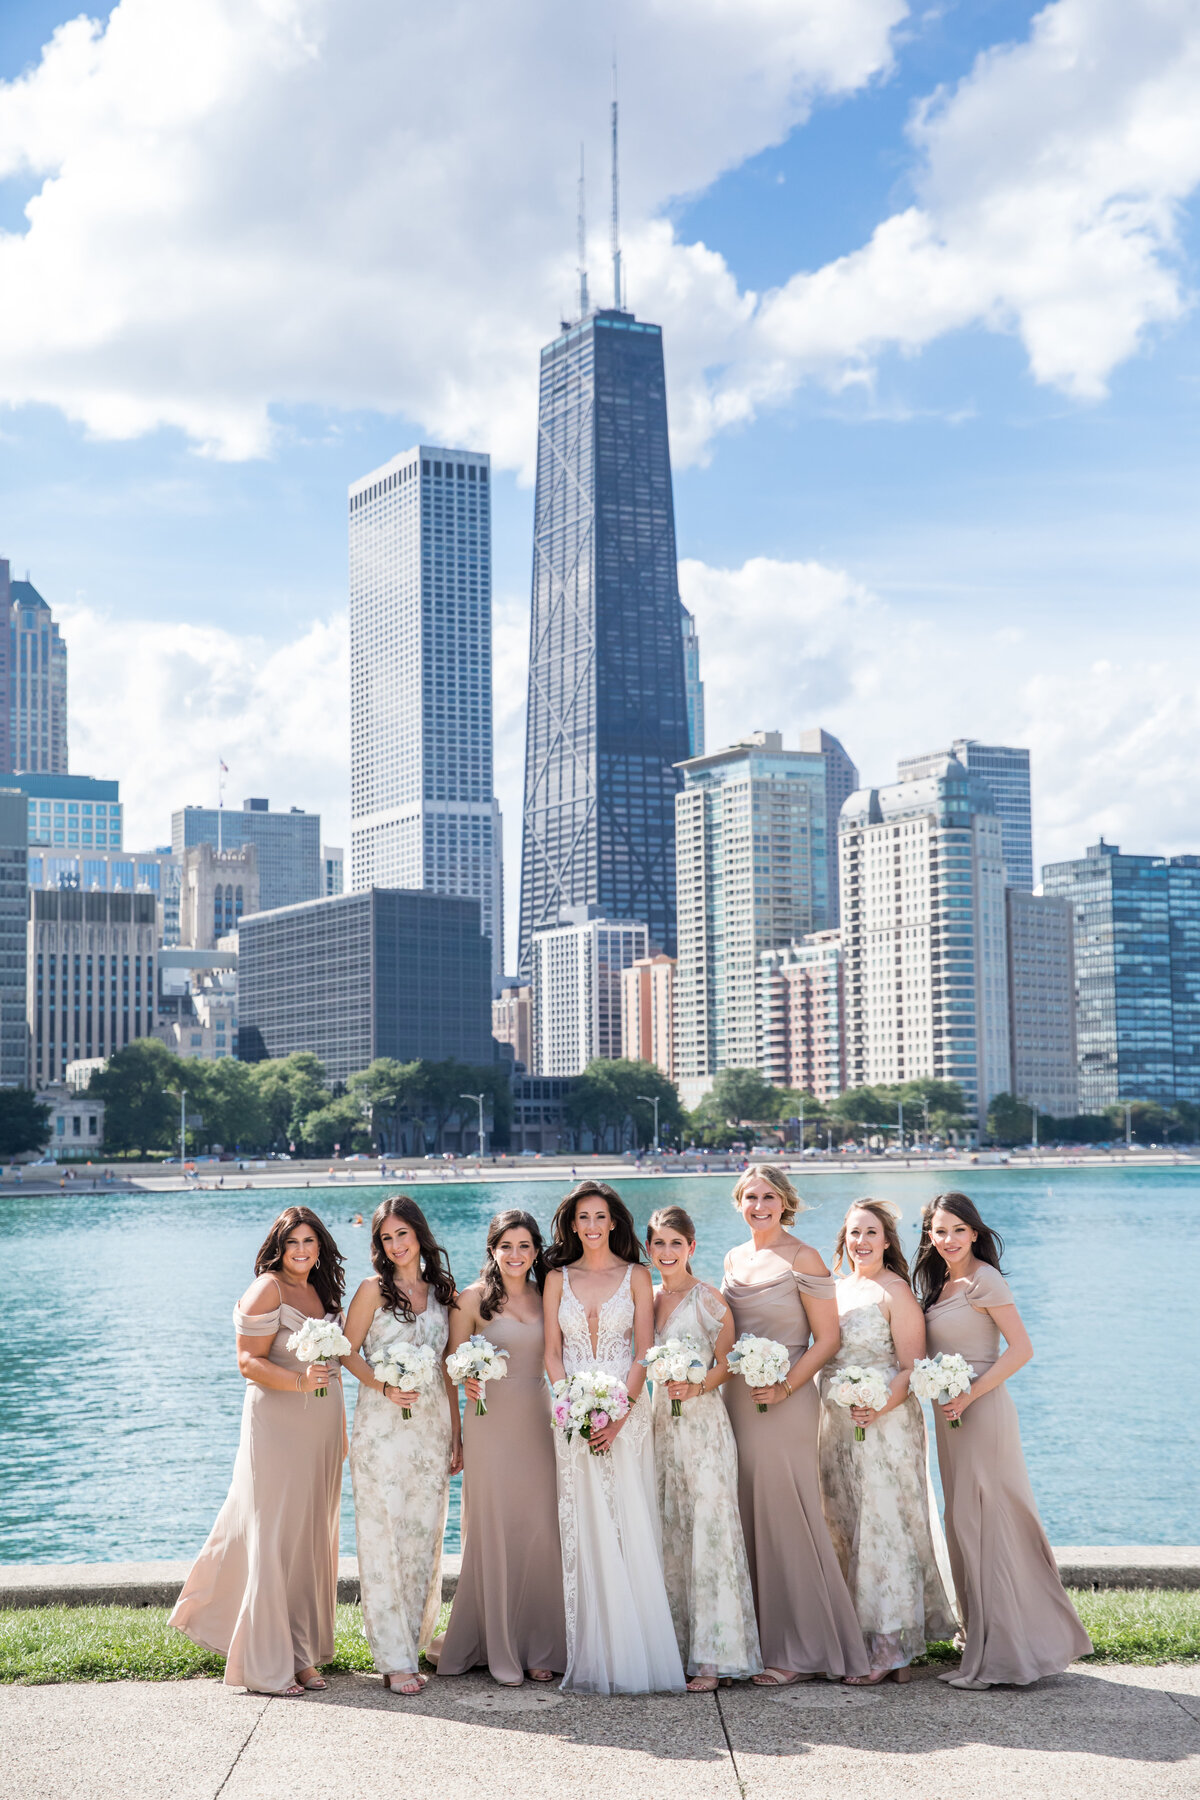 AE Bridesmaids by the lake